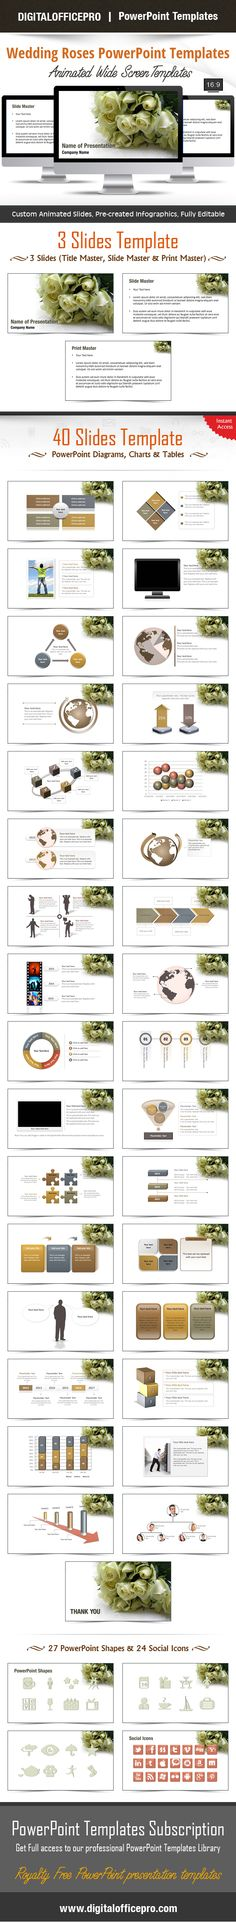 Engagement powerpoint template is a free powerpoint background impress and engage your audience with wedding roses powerpoint template and wedding roses powerpoint backgrounds from toneelgroepblik Image collections